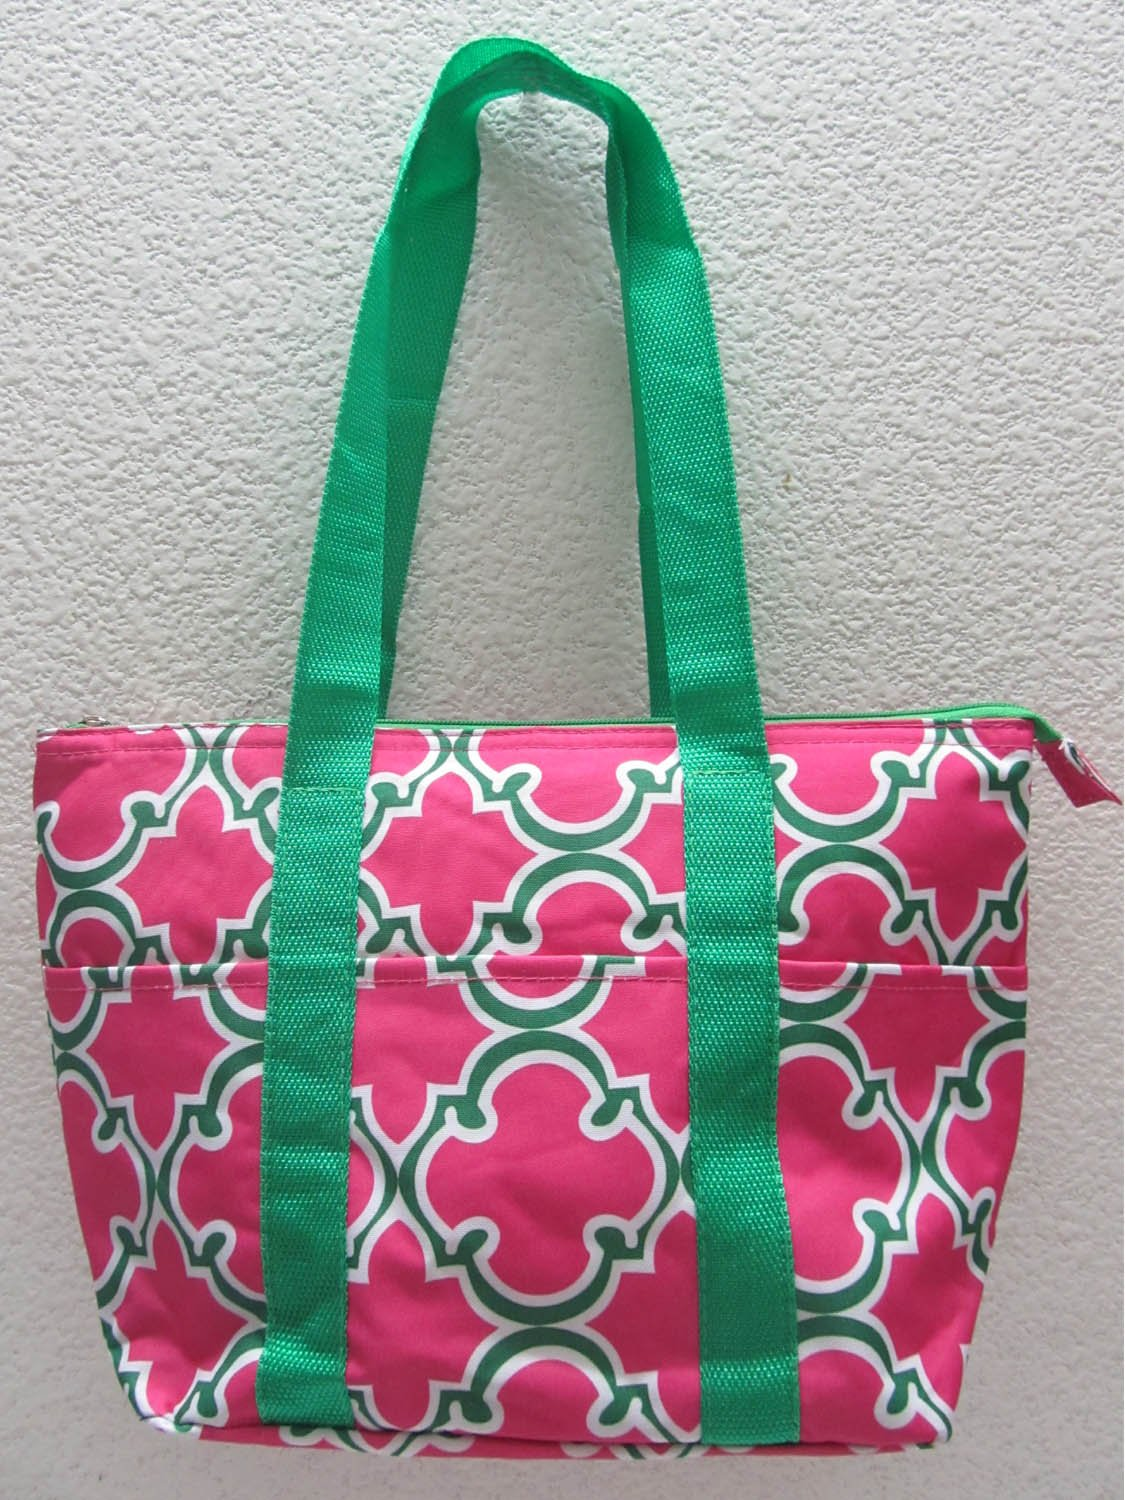 Good Bag Insulated Lunch Bag Portable Carry Storage Lunch Tote Bag - Pink Quatrefoil